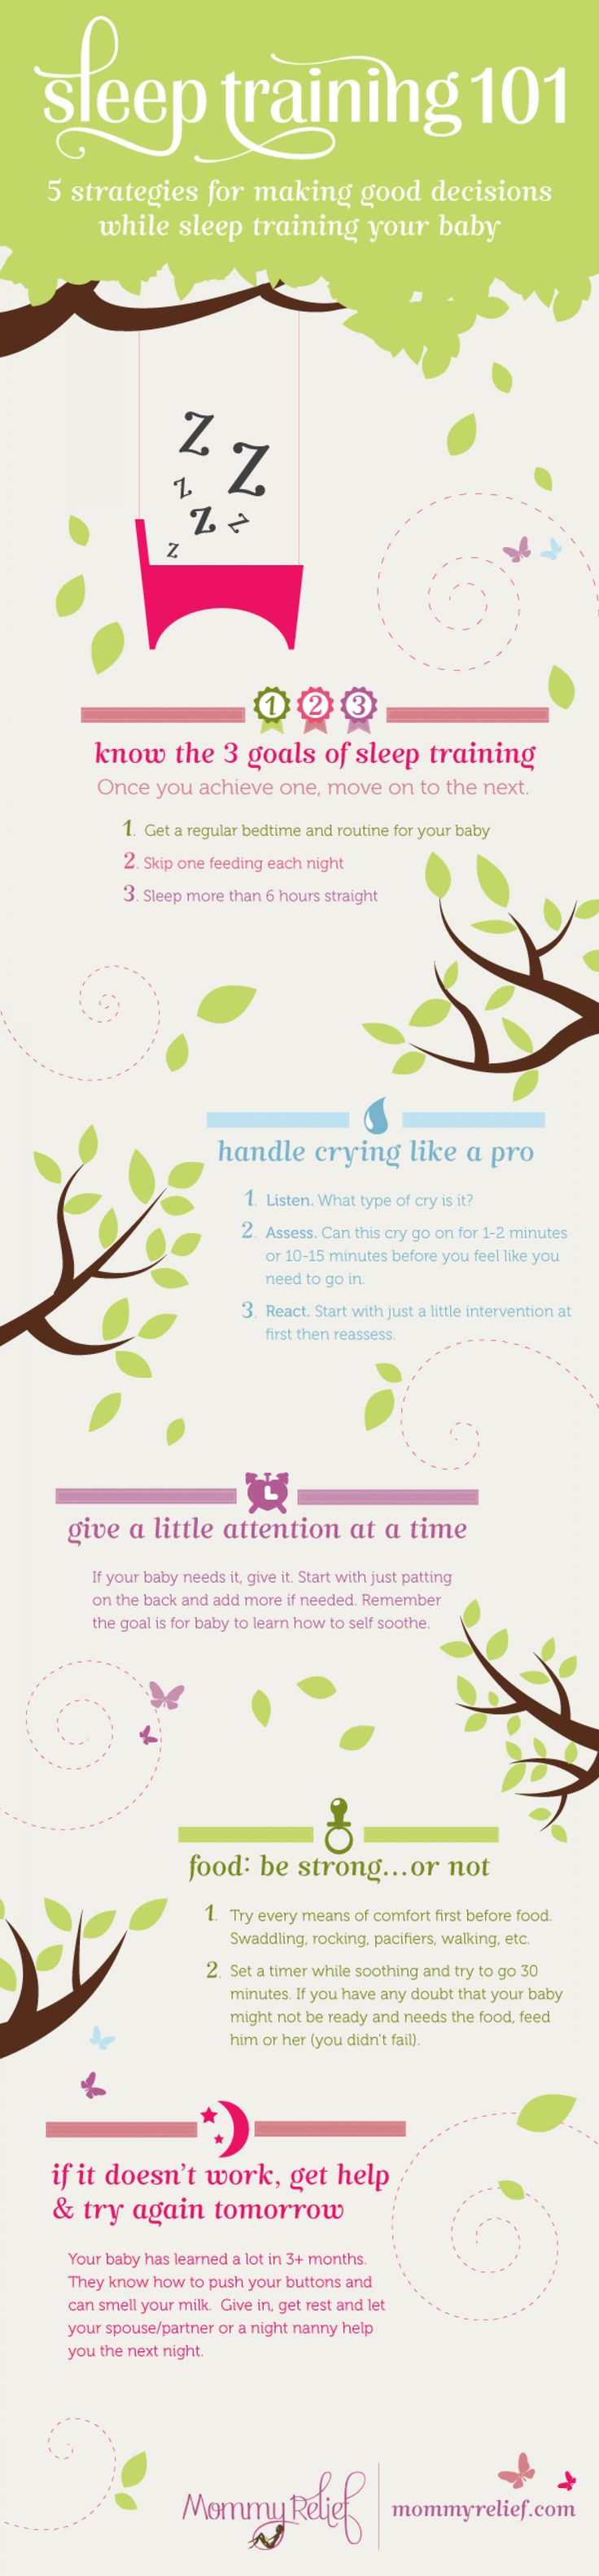 5 Strategies Assisting You With Sleep Training Your Baby Infographic